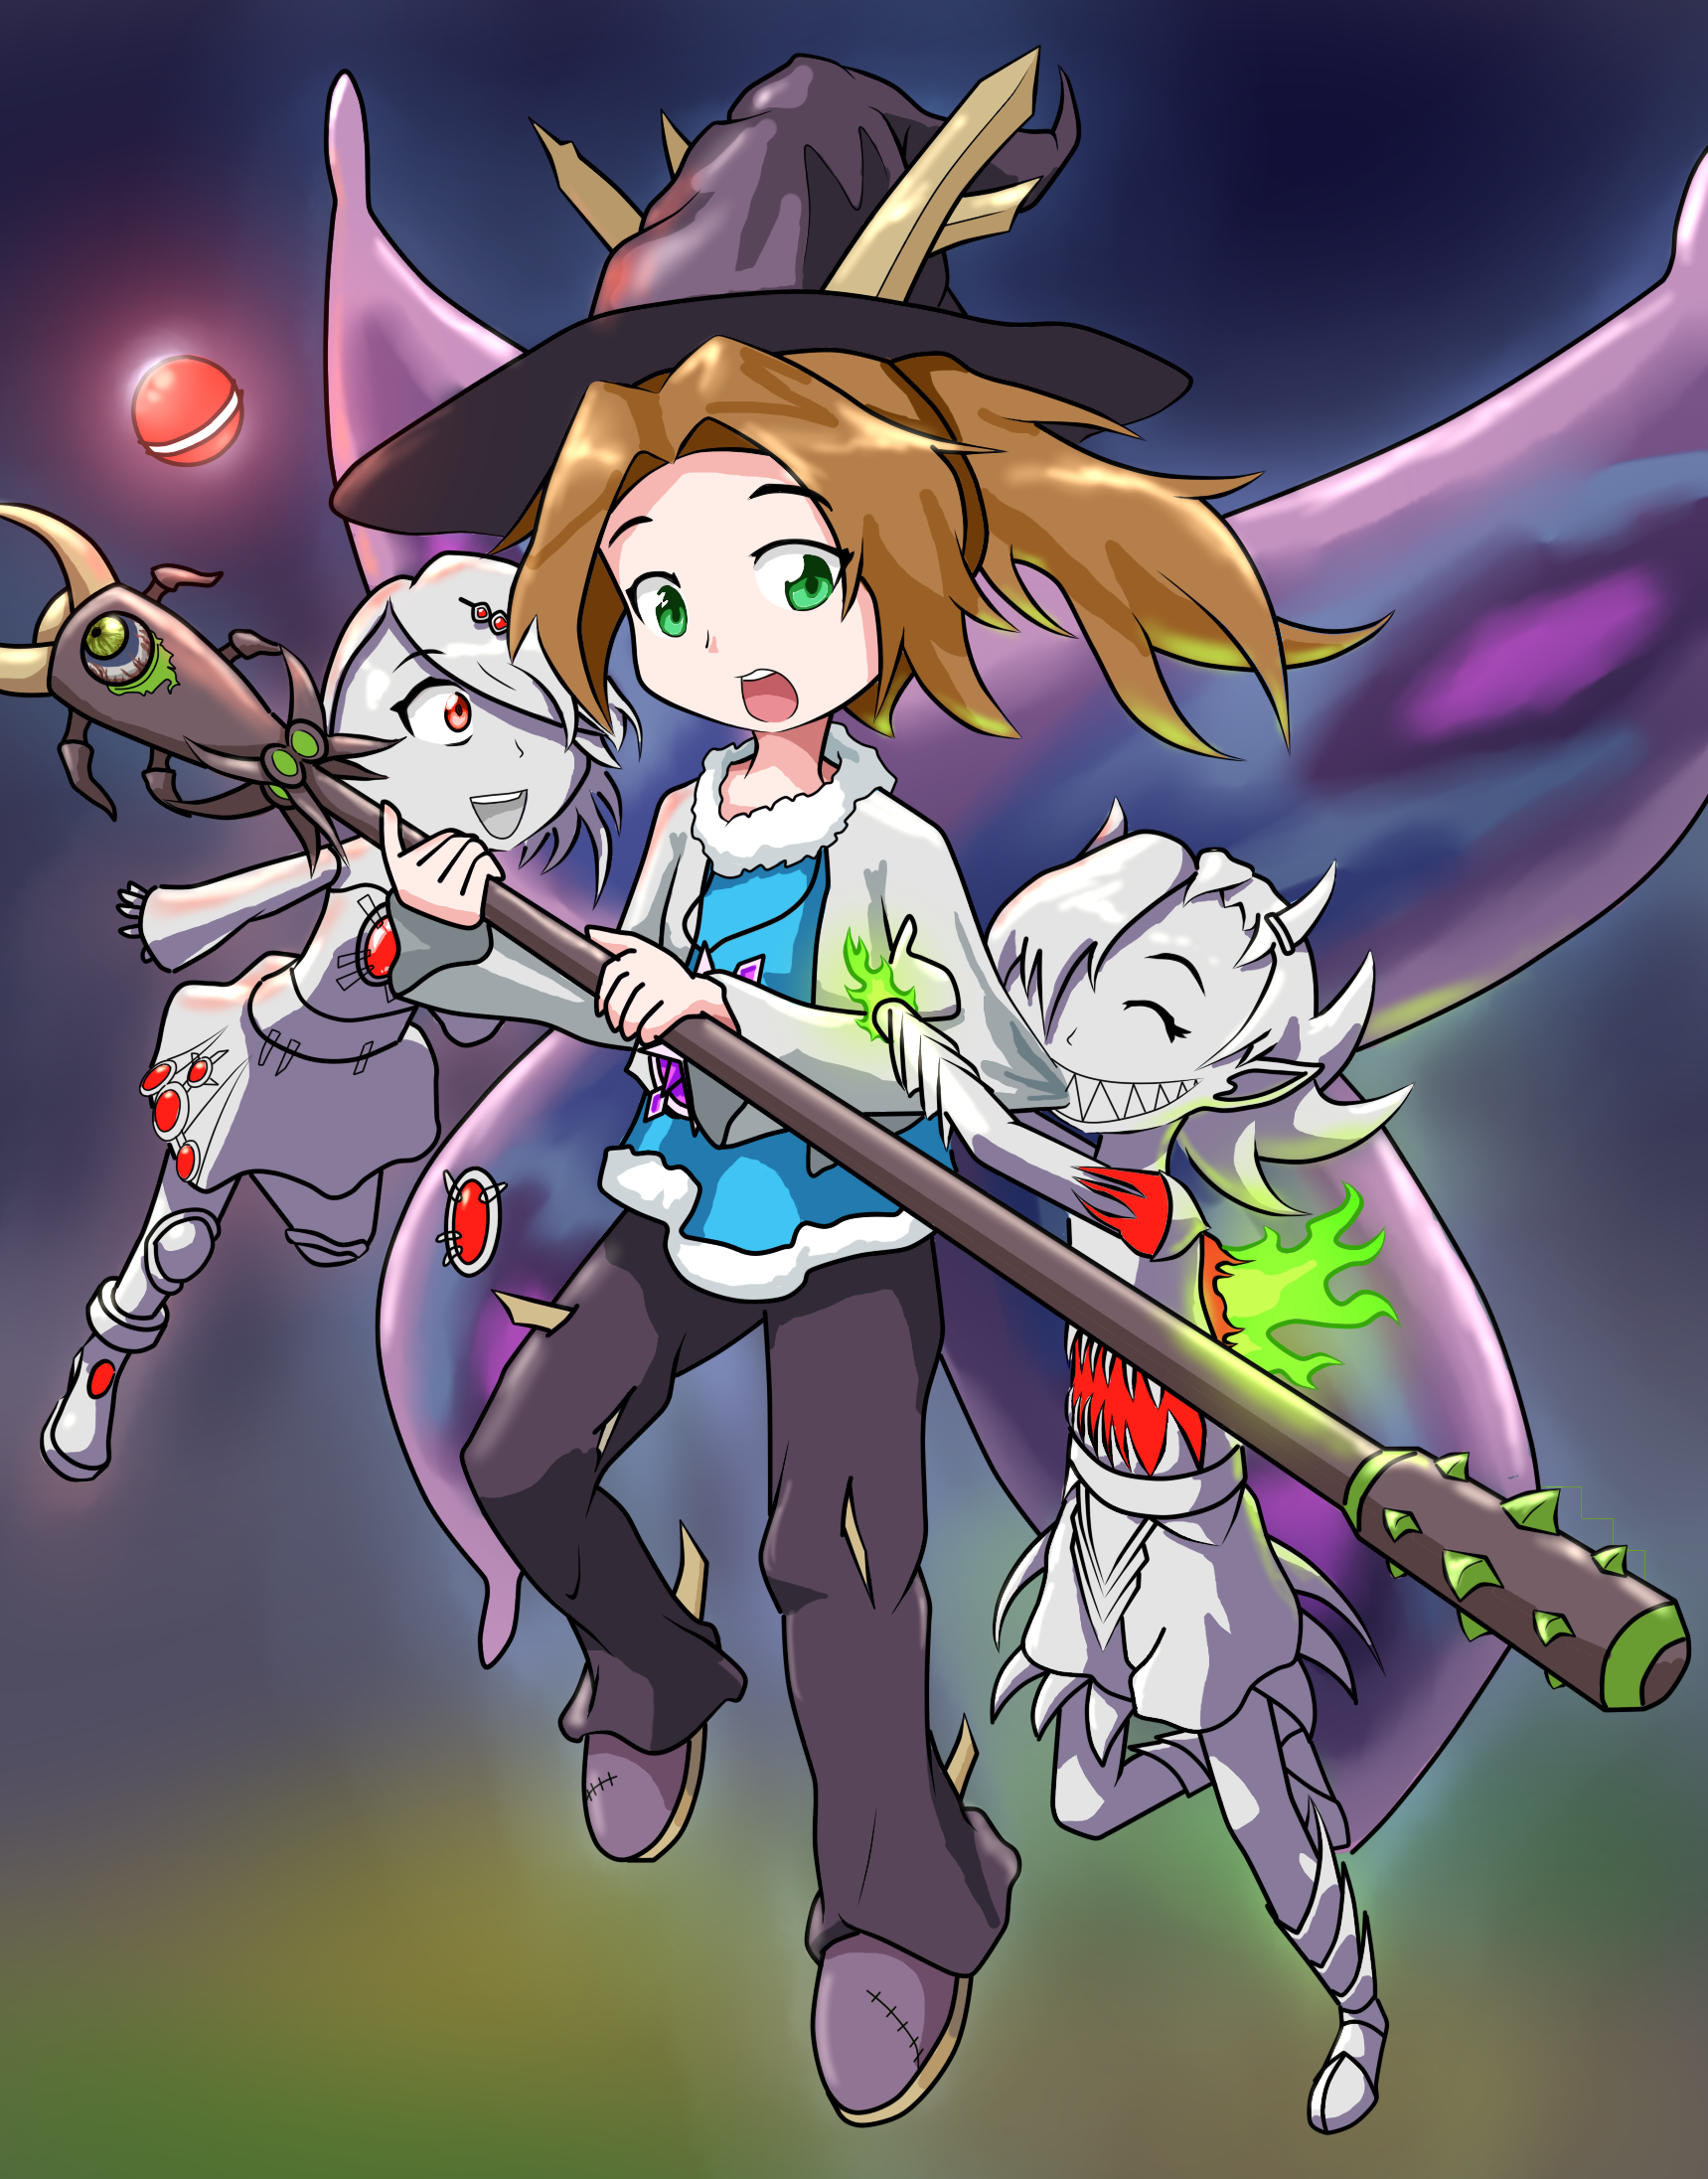 Anime Characters In Terraria : Terraria fan art alicia and the twins by jon smitten on